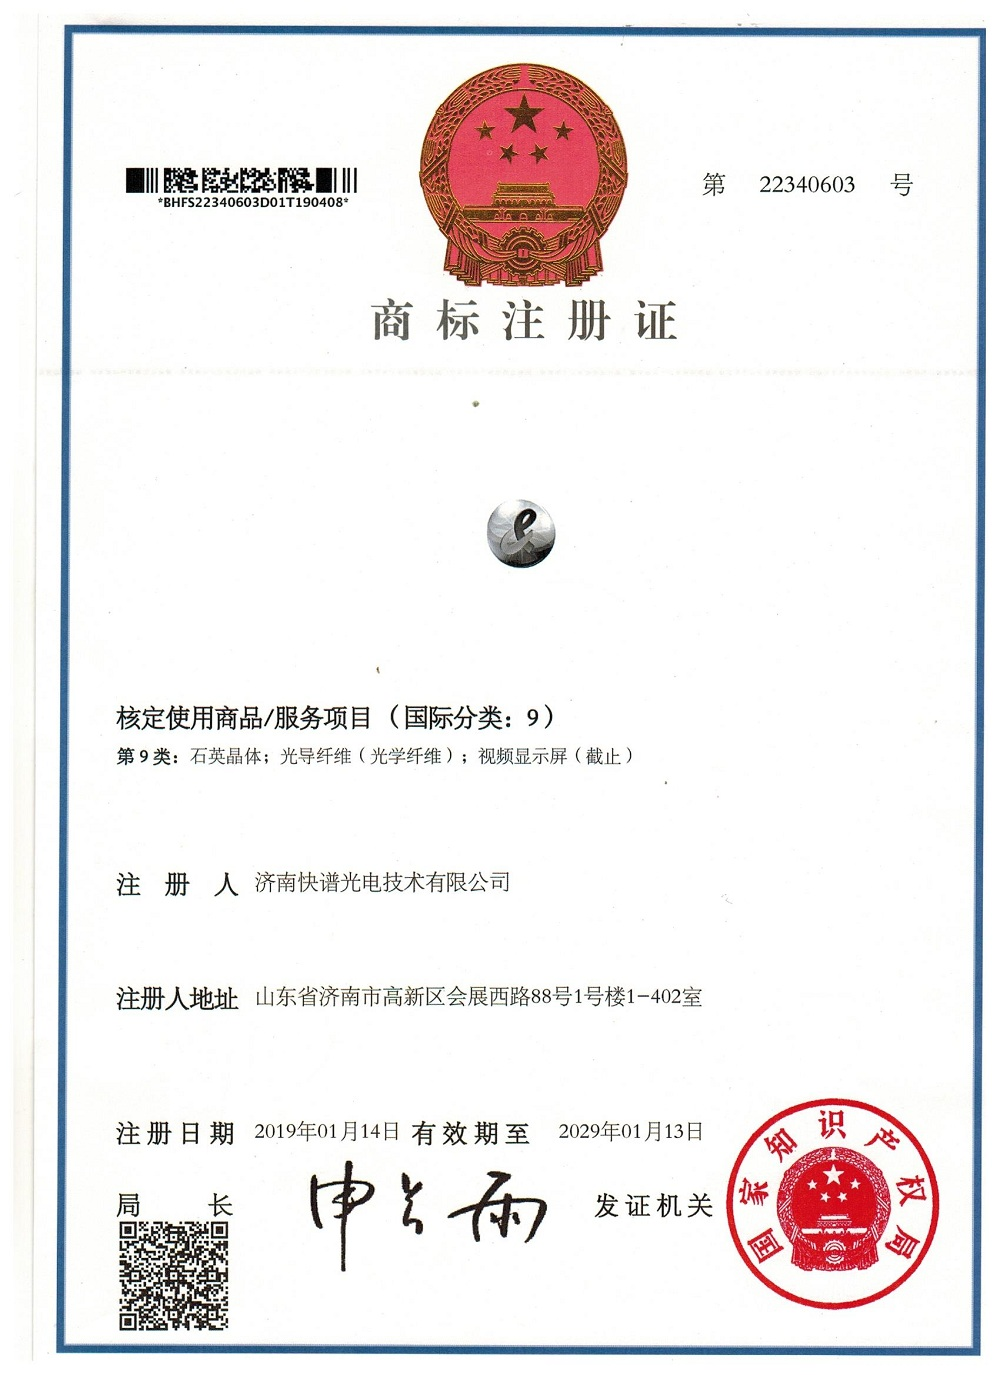 Graphic Trademark Registration Certificate 20190522